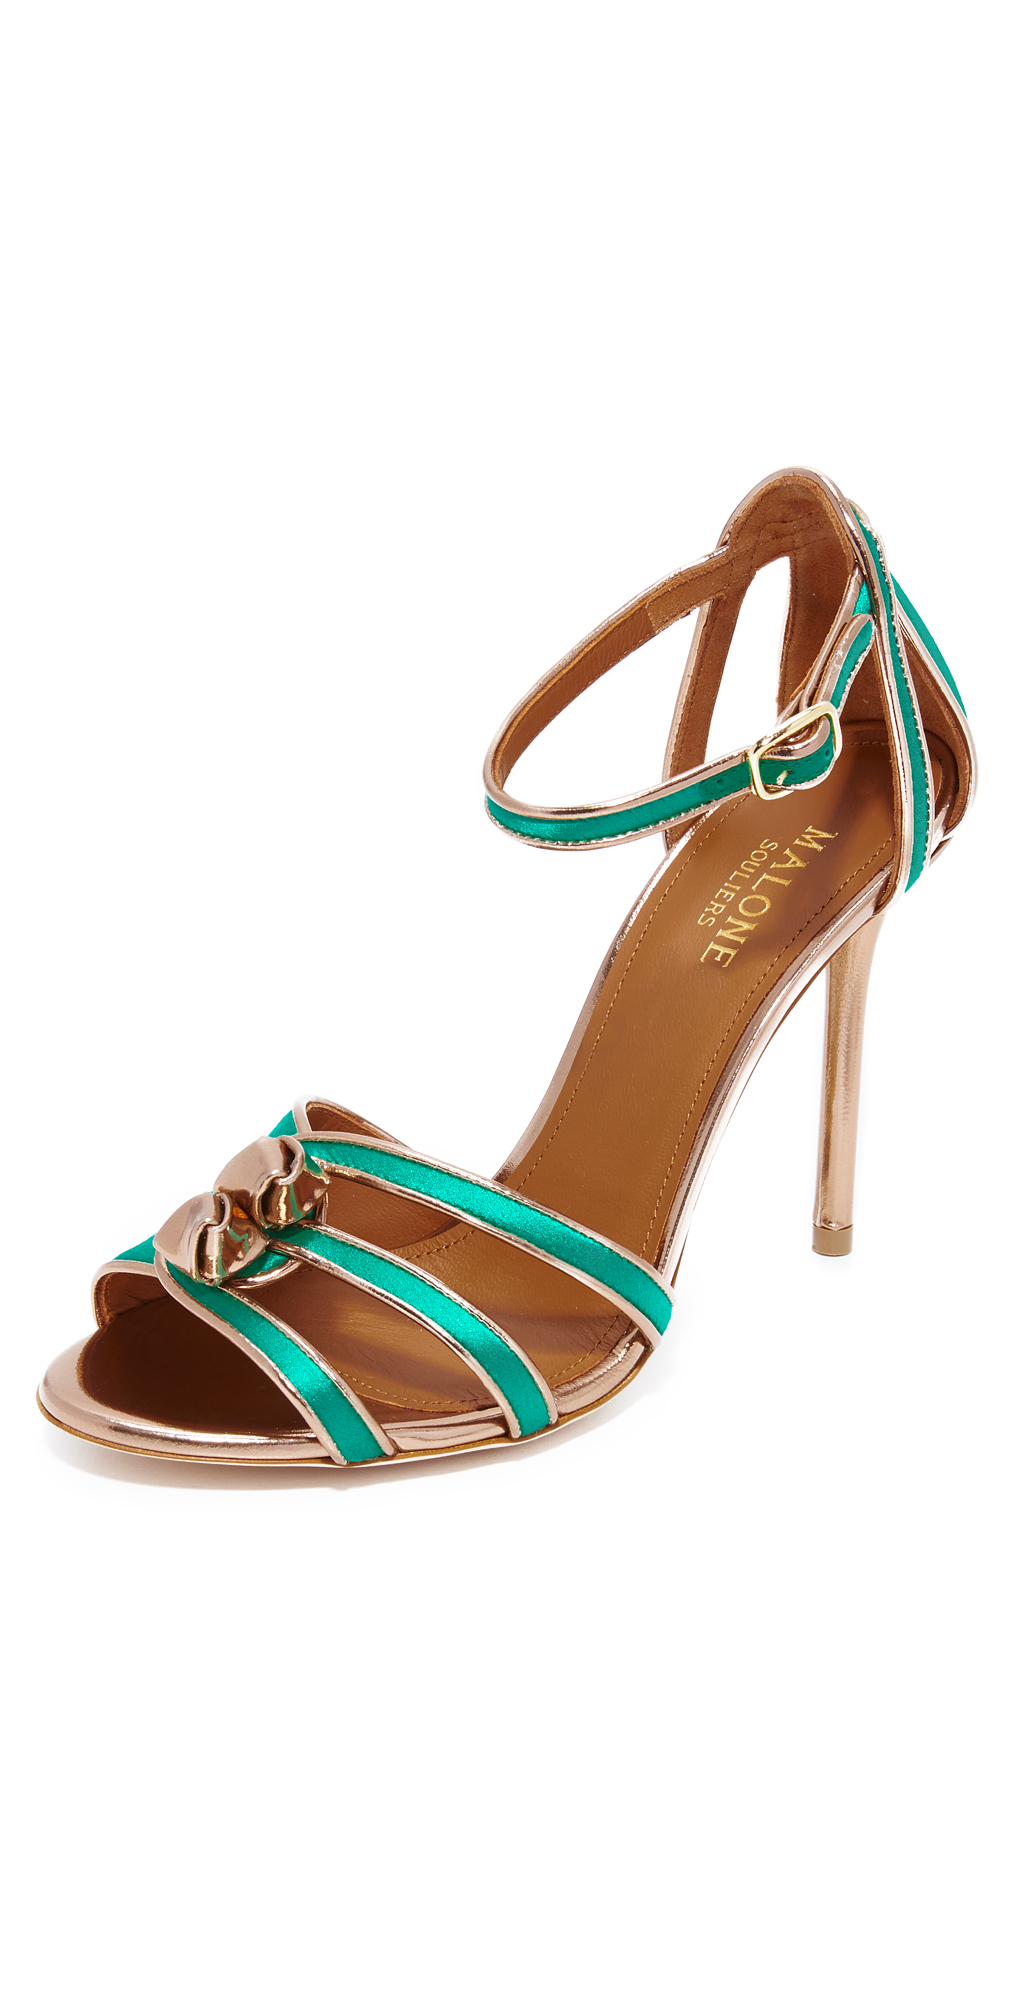 Eunice Sandals Malone Souliers